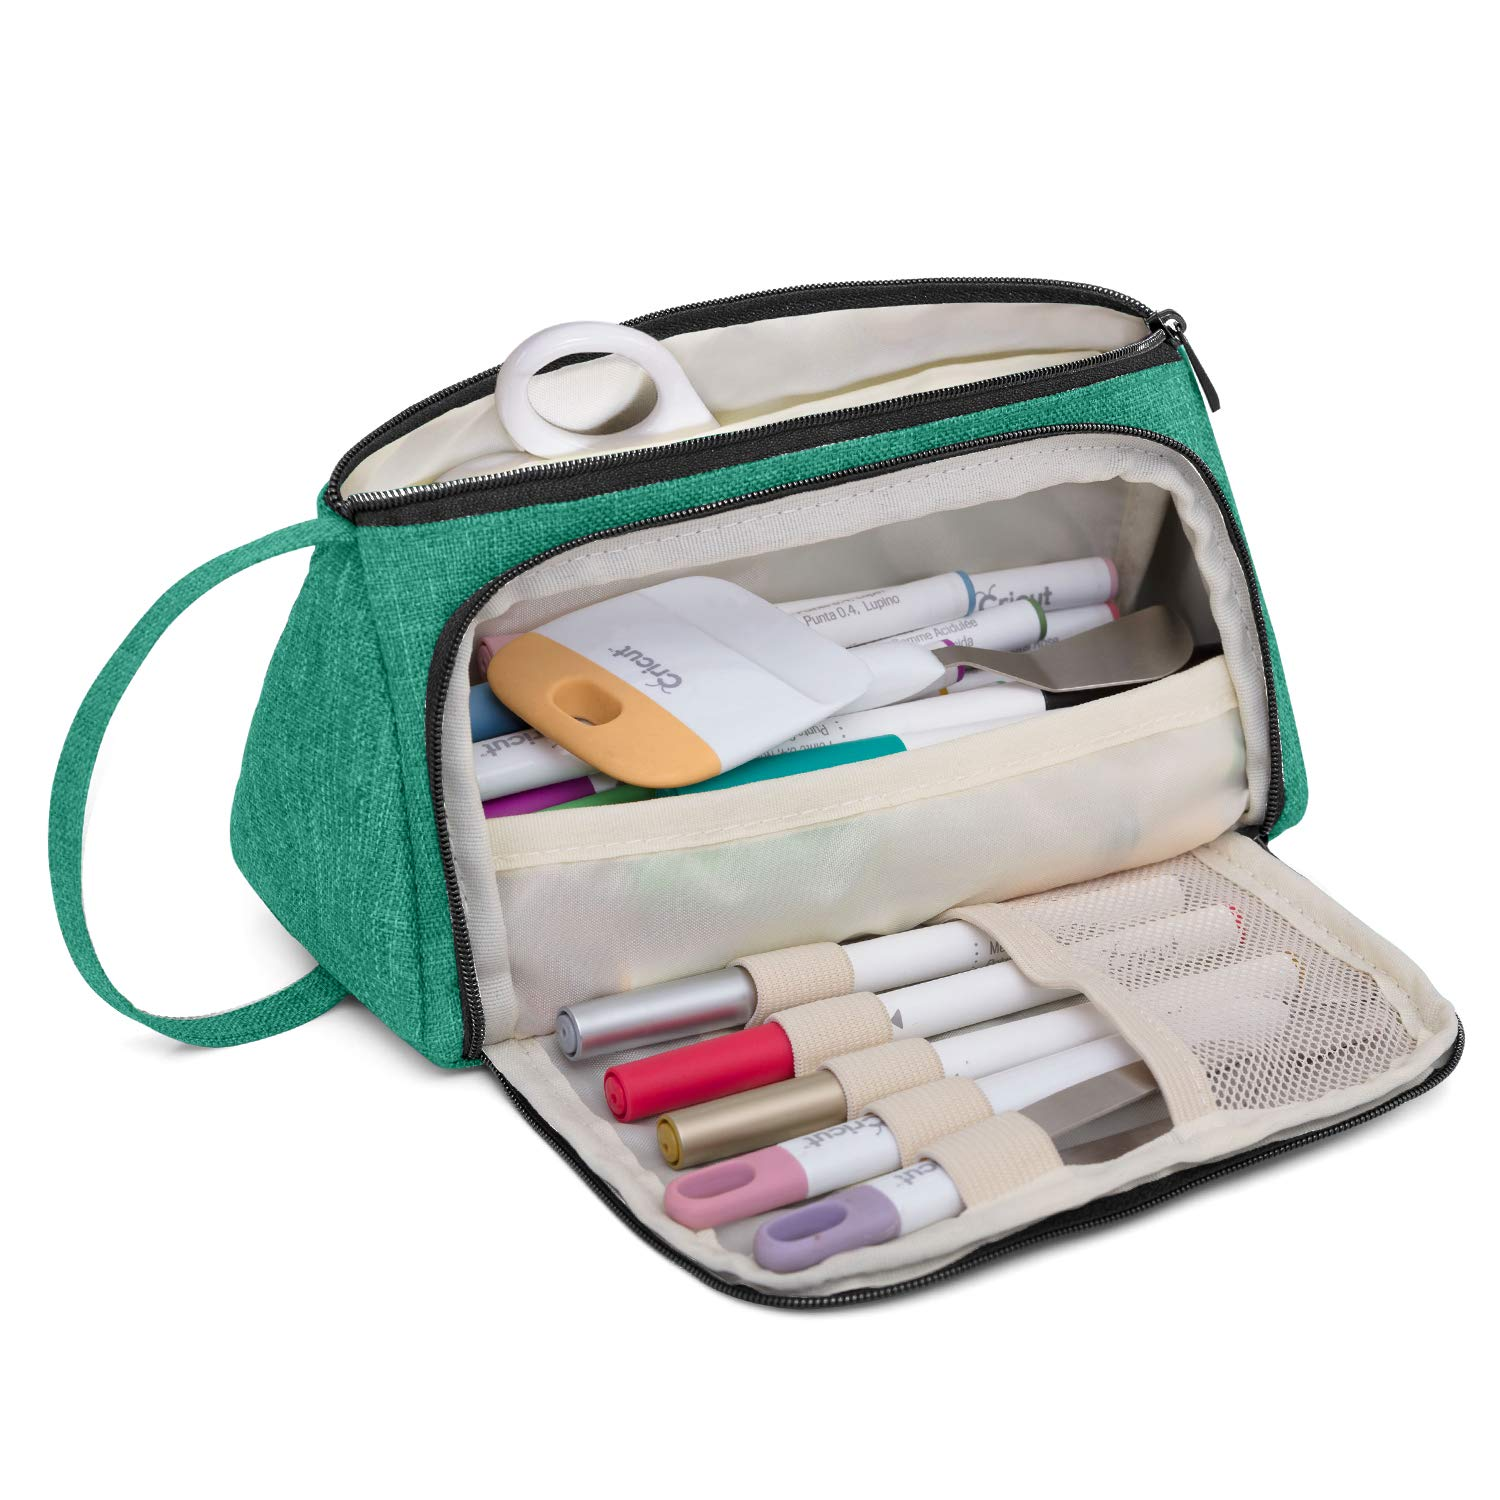 Luxja Bag for Cricut Pen Set and Basic Tools, Carrying Case for Cricut Accessories (Bag Only), Green